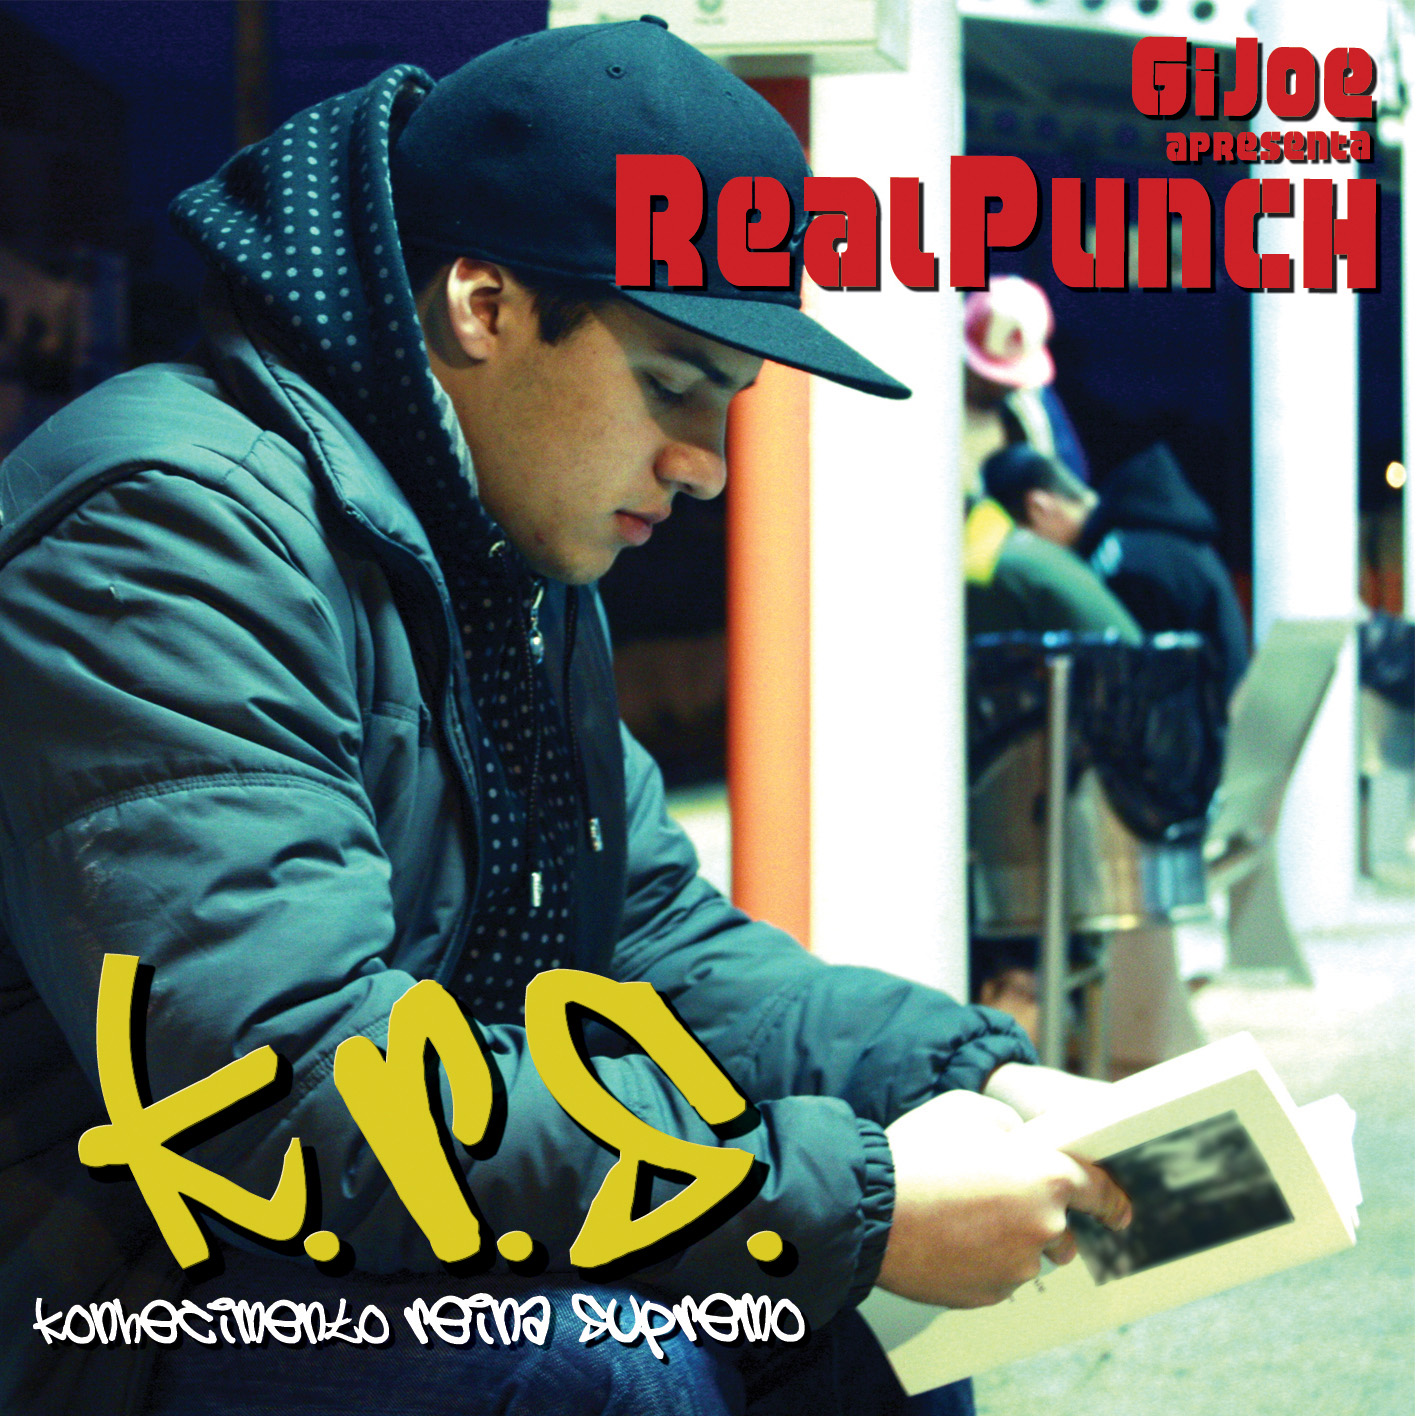 RealPunch - KRS